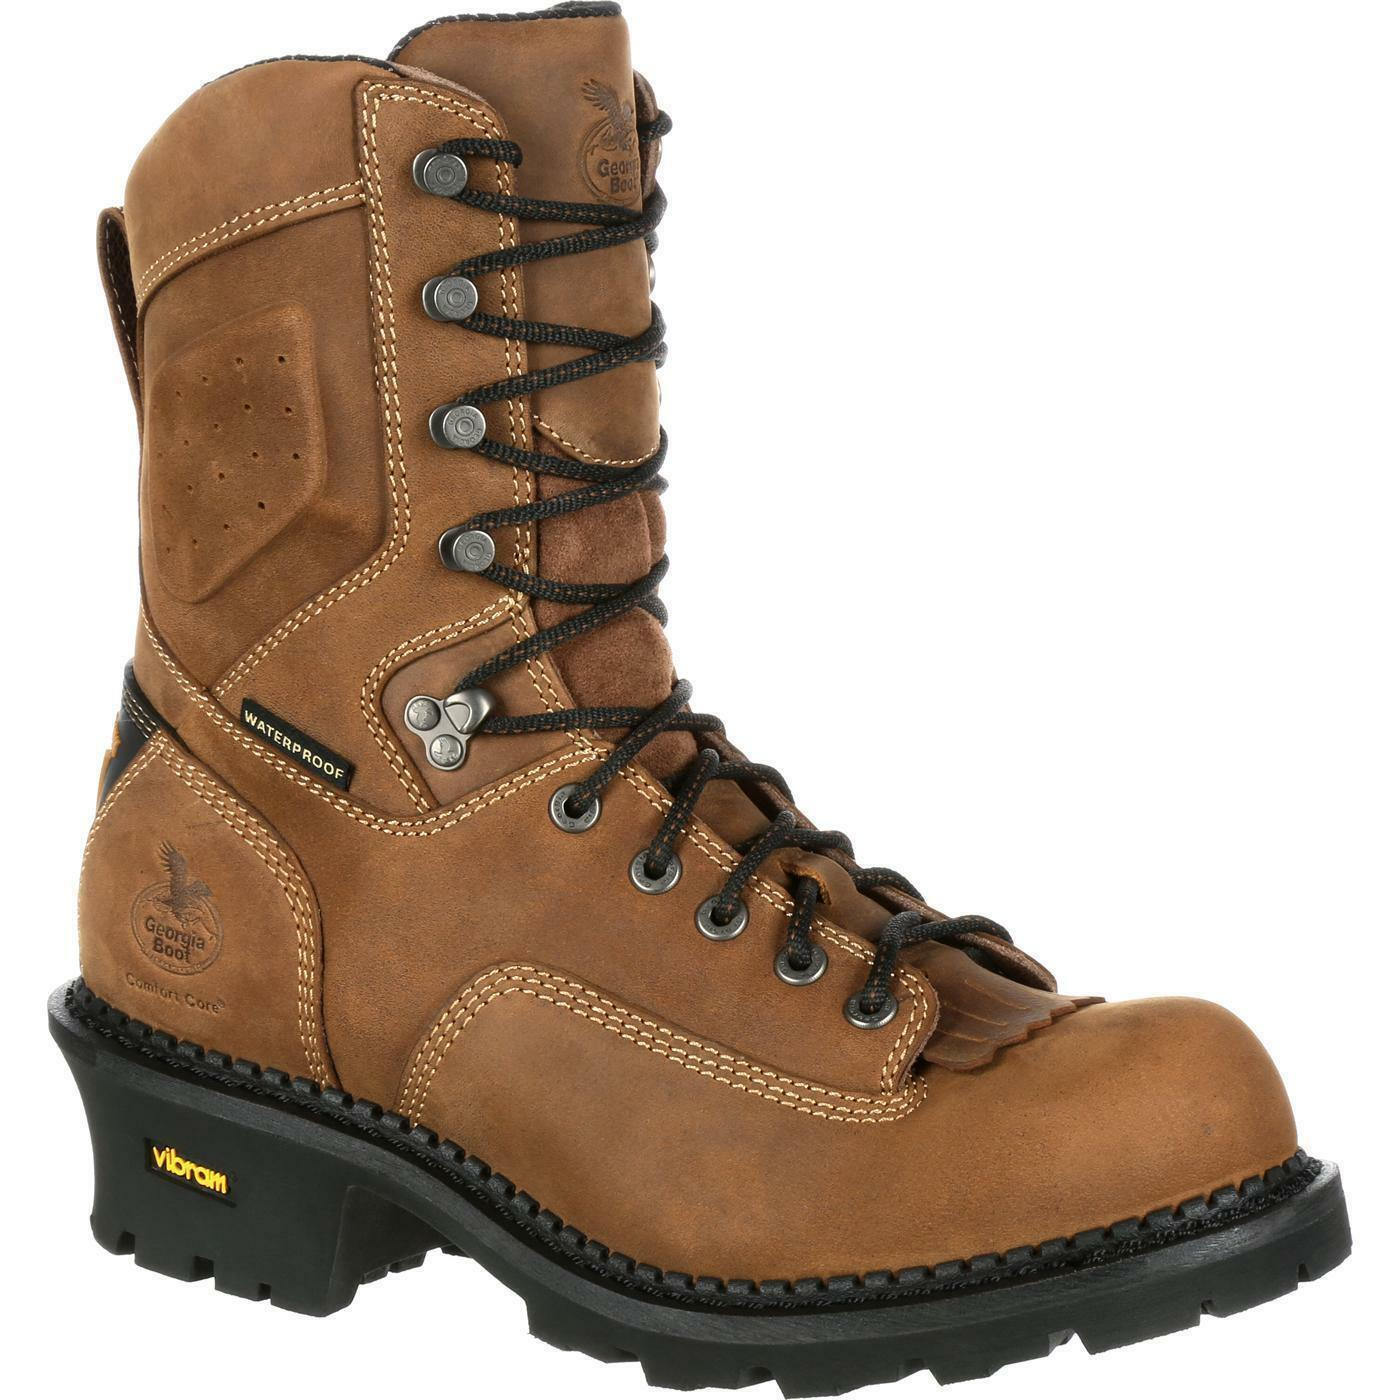 Georgia GB00097 9  Comfort Core Logger Composite Toe Waterproof Work Boot